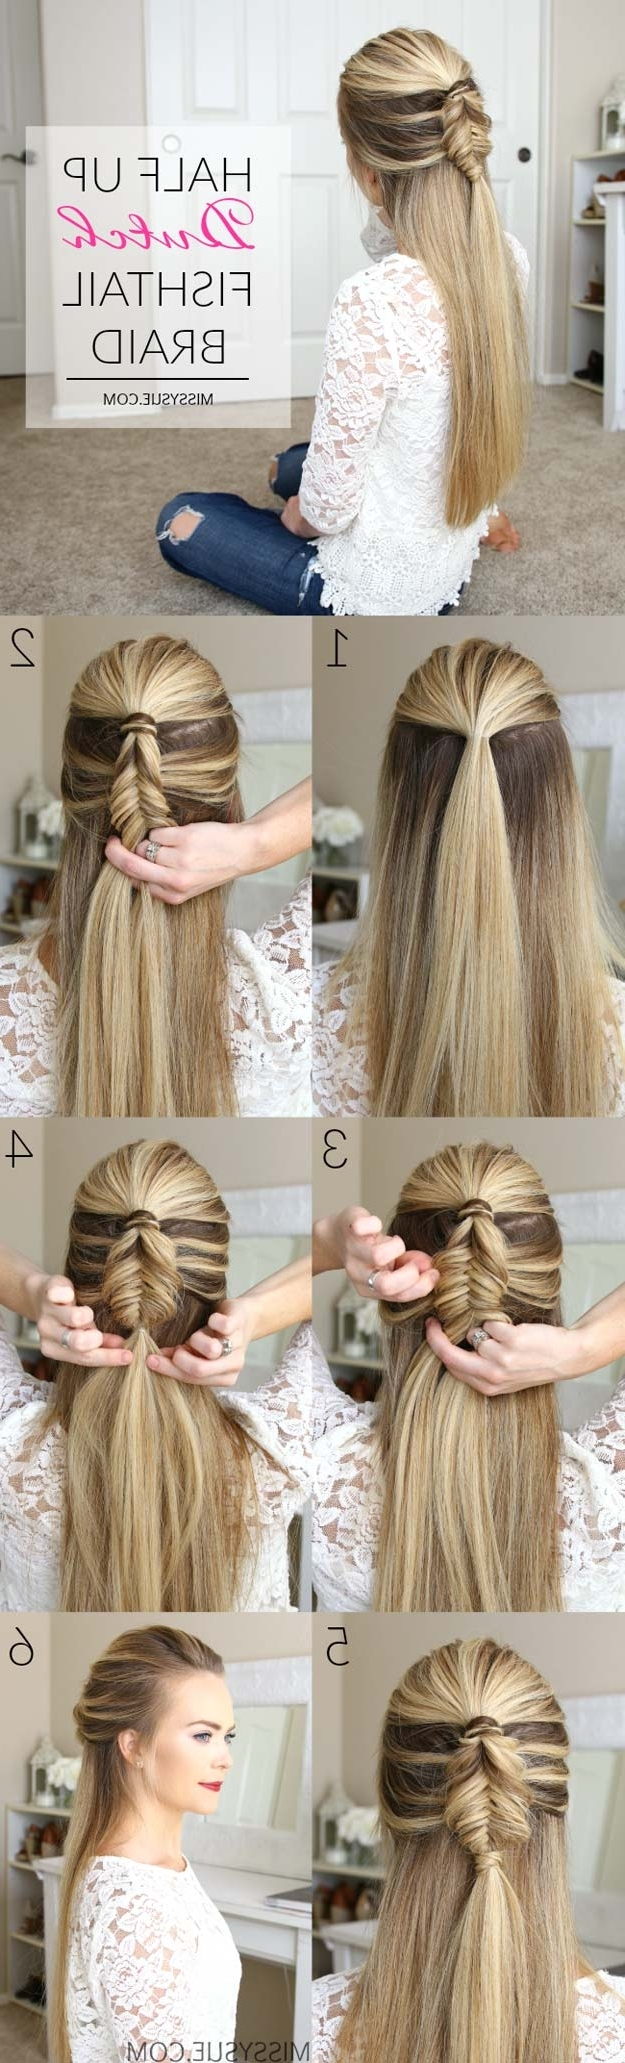 40 Of The Best Cute Hair Braiding Tutorials Inside 2017 French Braids Crown And Side Fishtail (View 4 of 15)